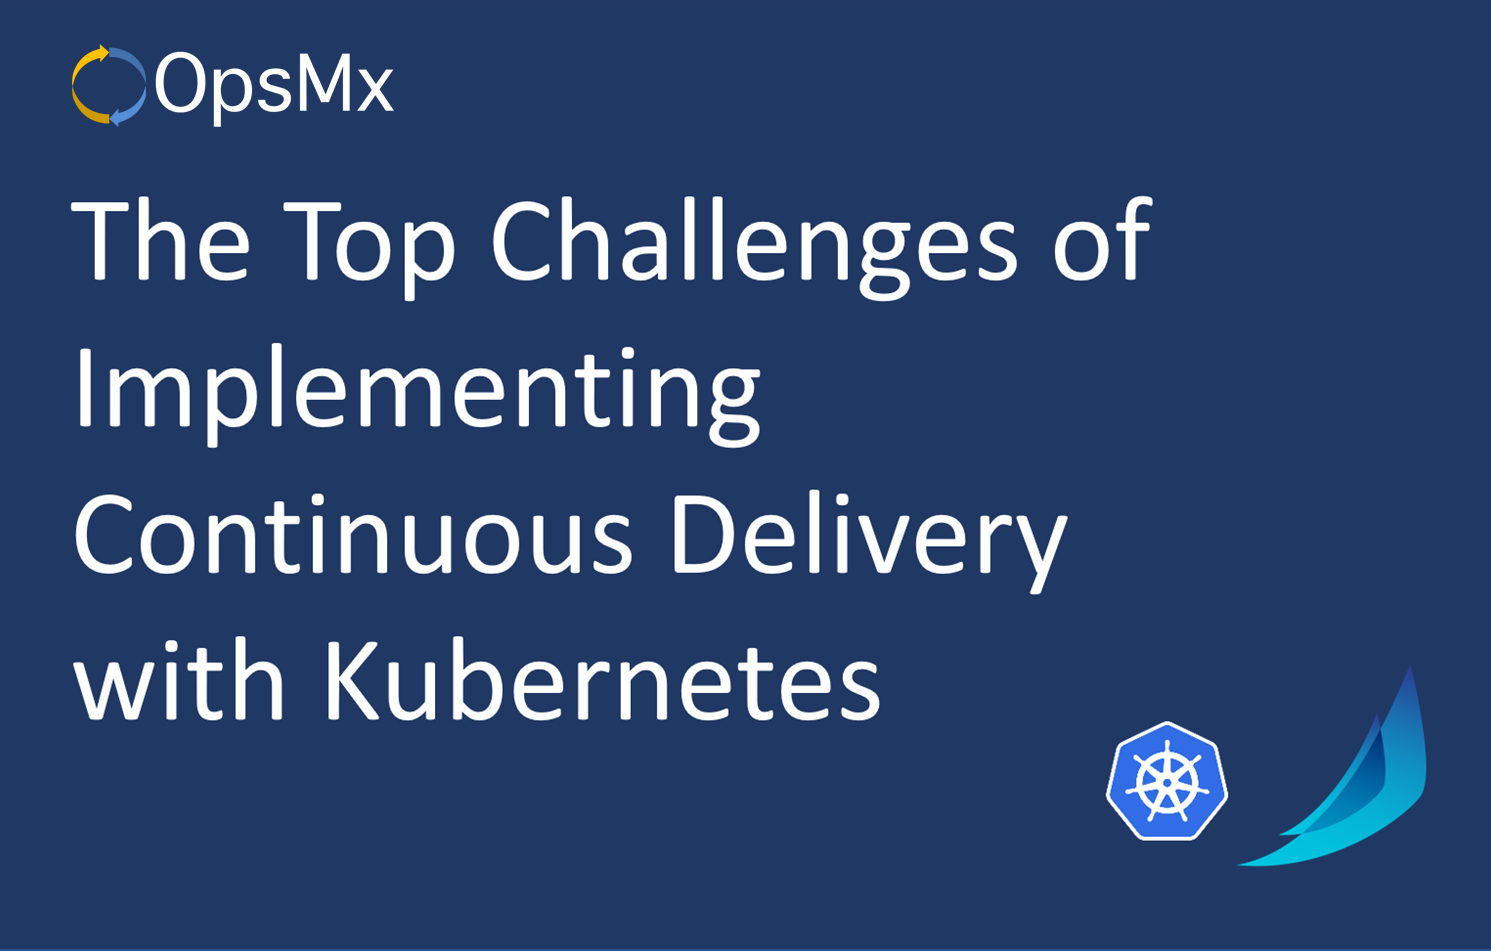 Top Challenges of Implementing Continuous Delivery with Kubernetes